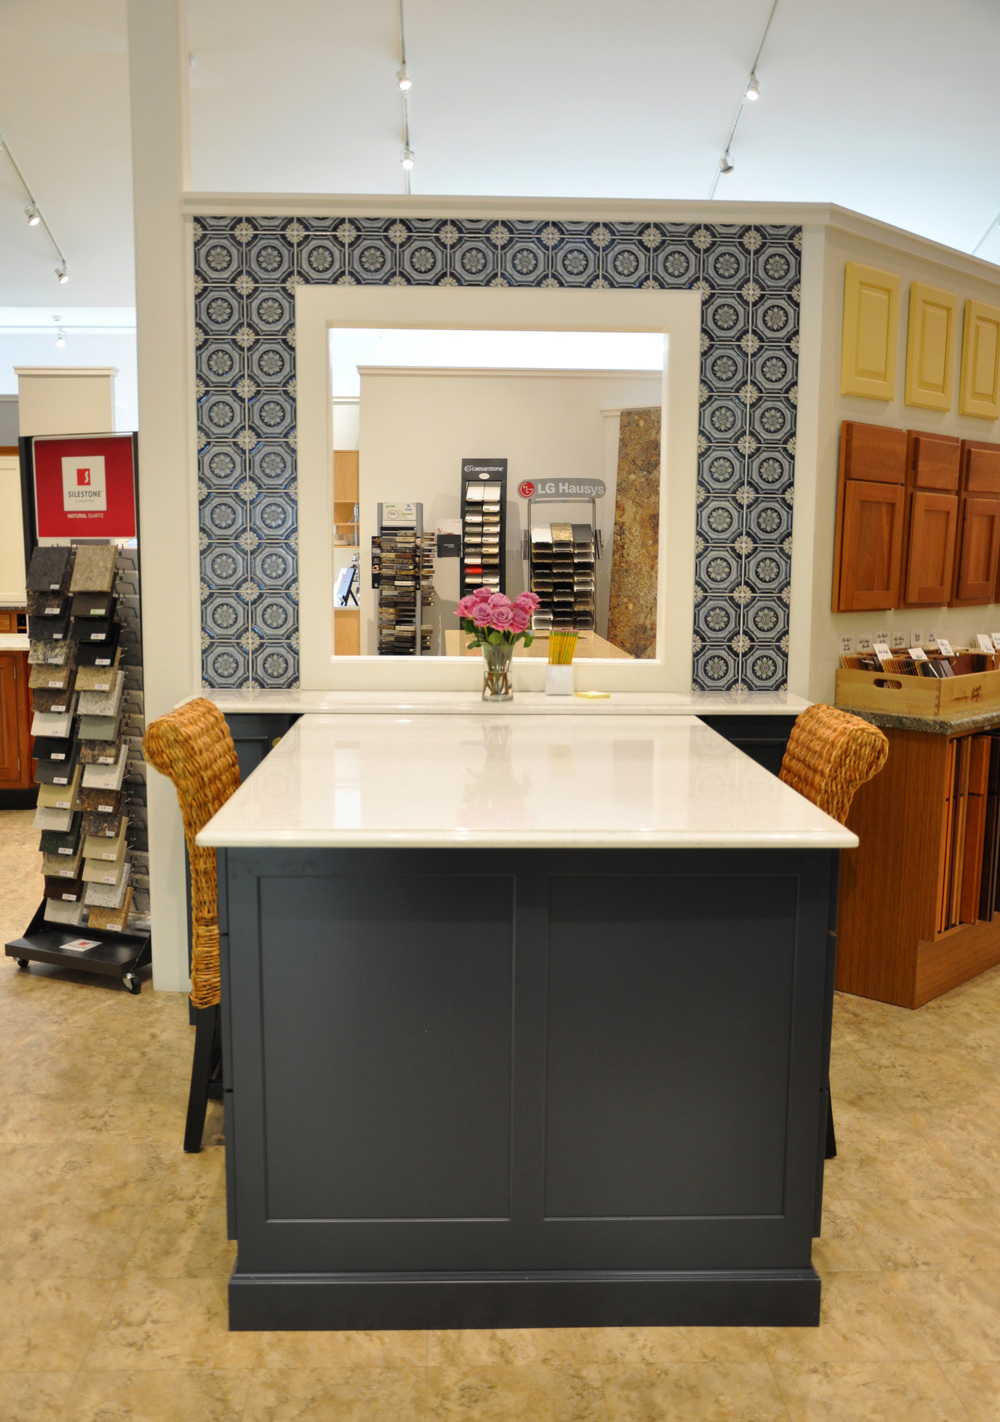 Vantage by Kraftmaid Cabinetry / Lincoln Maple Door Style  / Midnight Painted Finish / Zodiaq Coarse Carrar Engineered Stone Tops / Fresca Andorra 6x6 Tile / Berenson Hardware Domestic Bliss Collection in Modern Bronze Finish / Stool from Pier 1 Imports